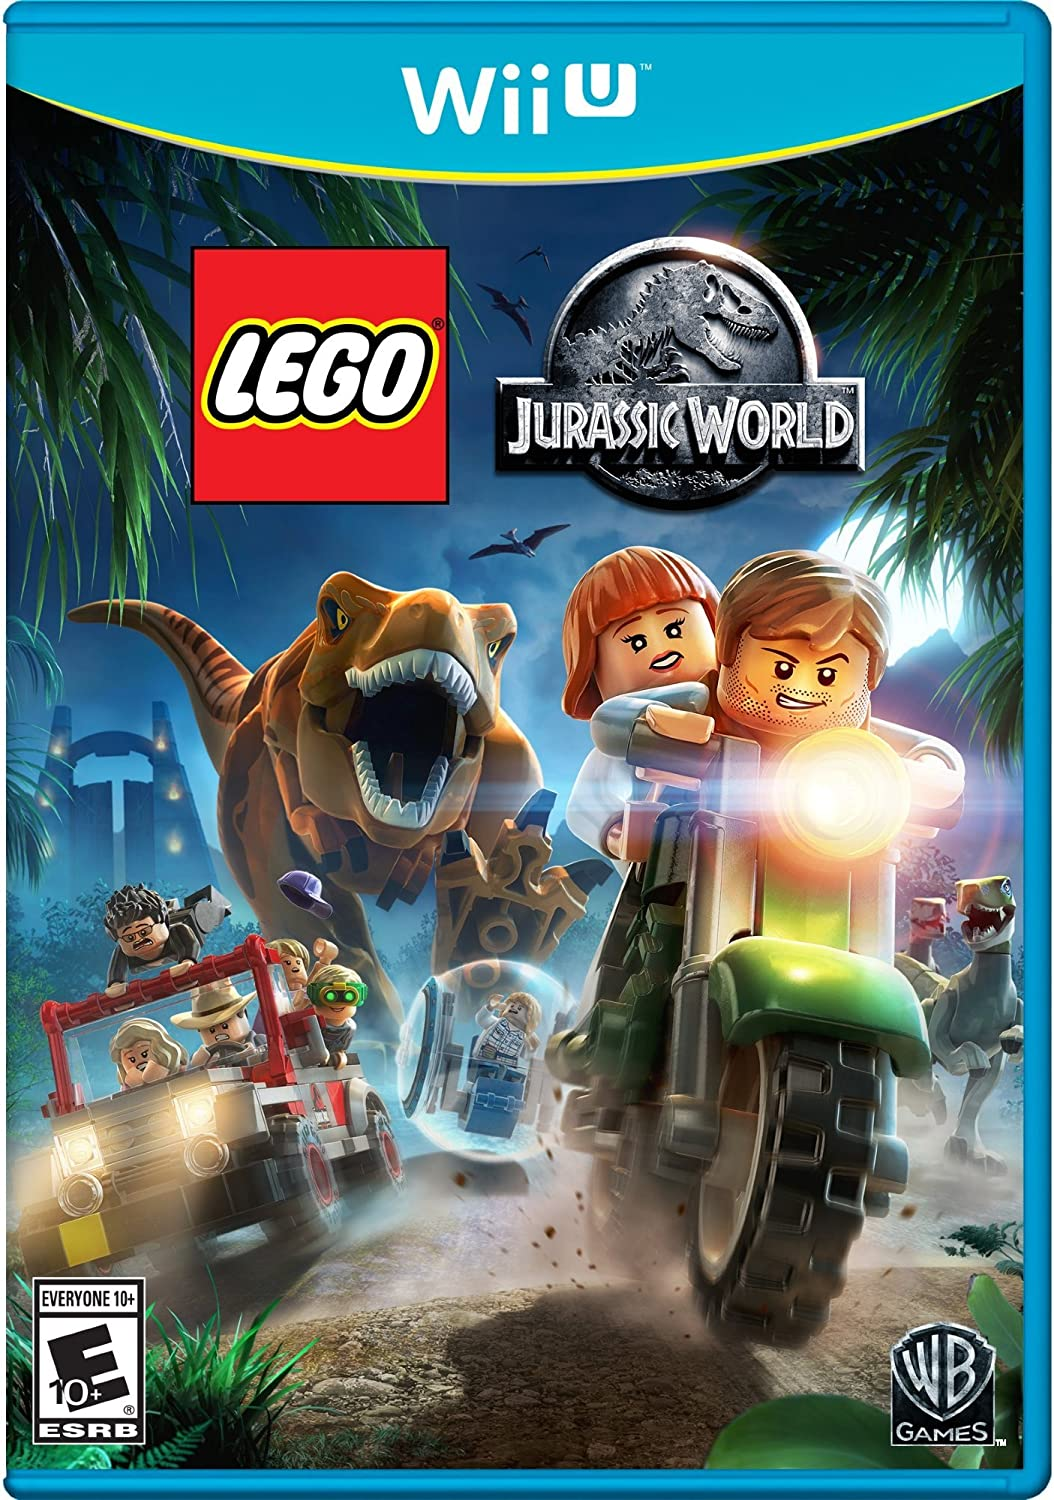 Amazon lego jurassic world xbox 360 standard edition whv amazon lego jurassic world xbox 360 standard edition whv games video games gumiabroncs Gallery